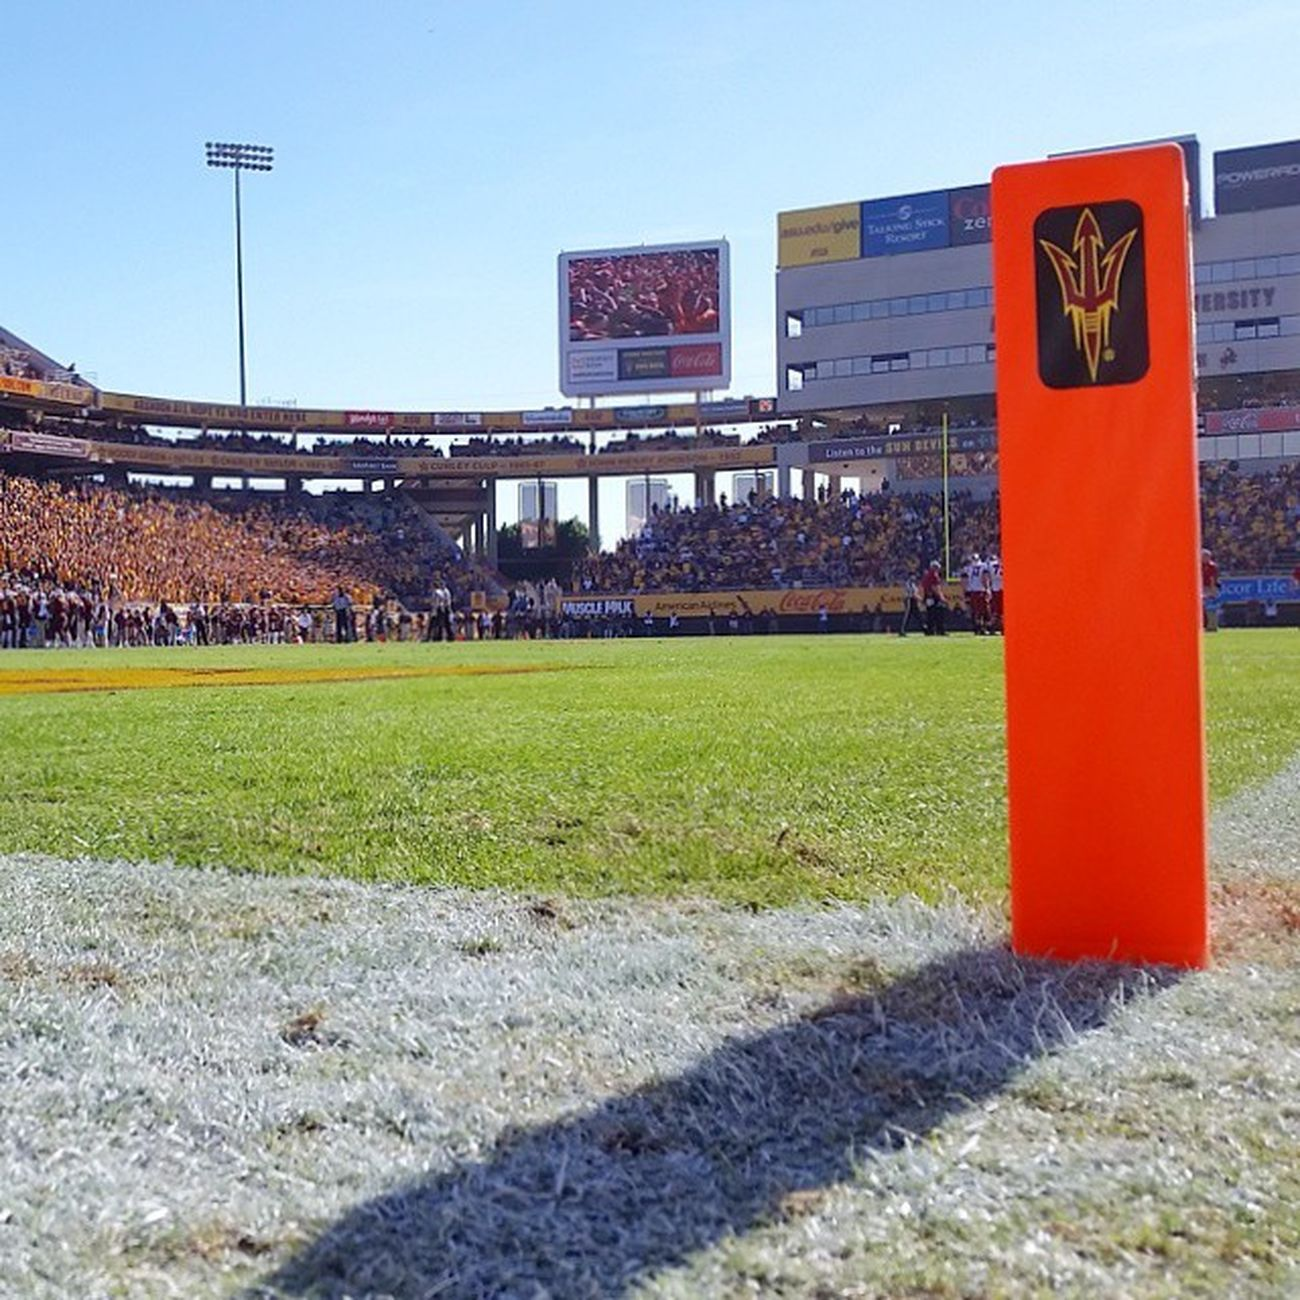 Couldn't ask for a better day for Collegefootball in November. Gameday in the Sun Sundevils